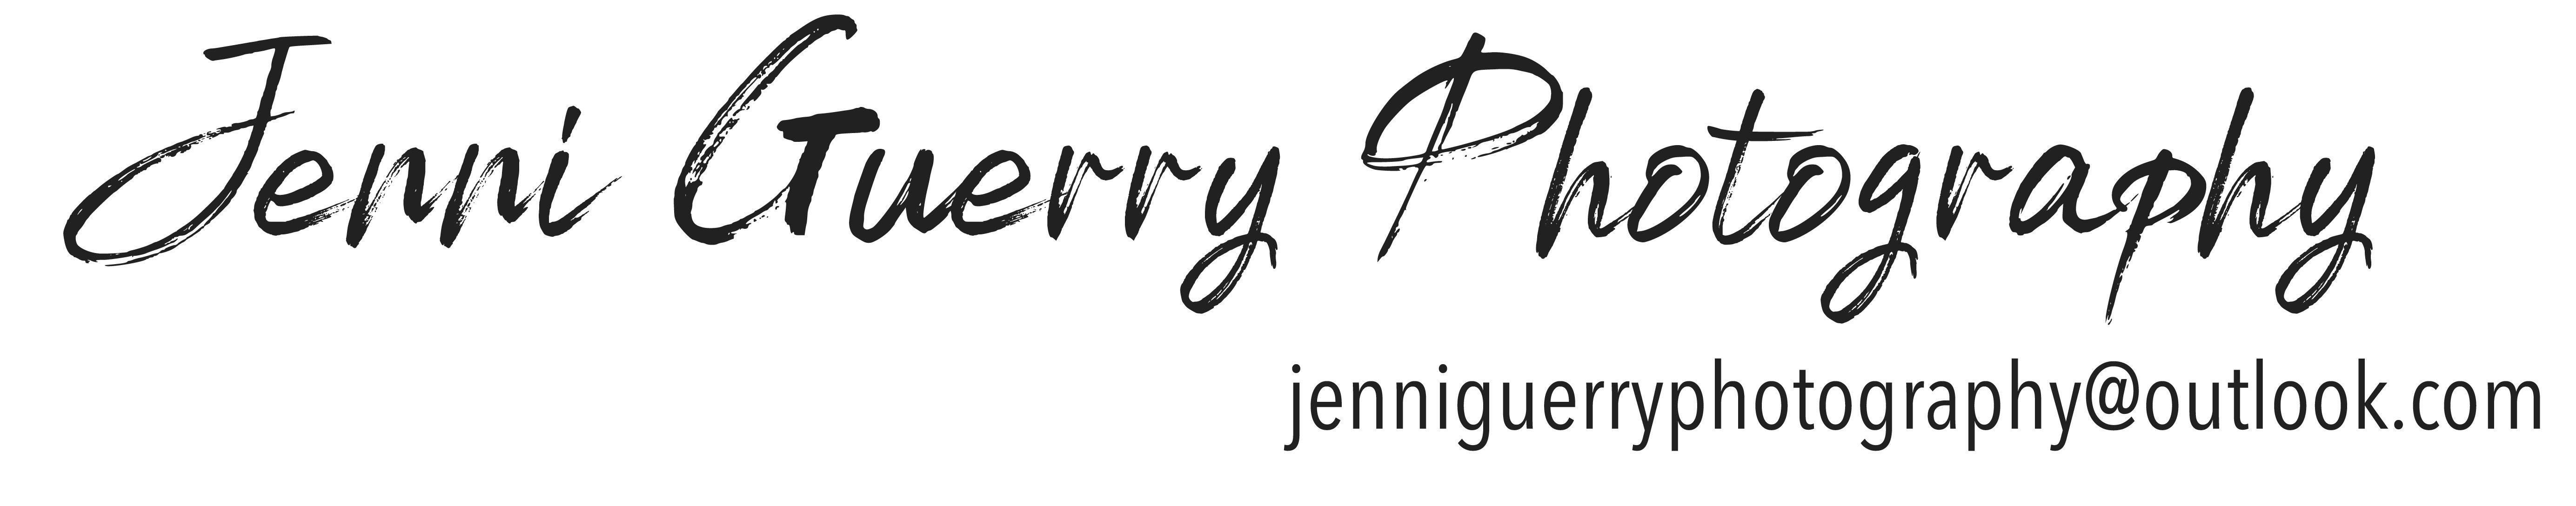 Jenni Guerry Photography